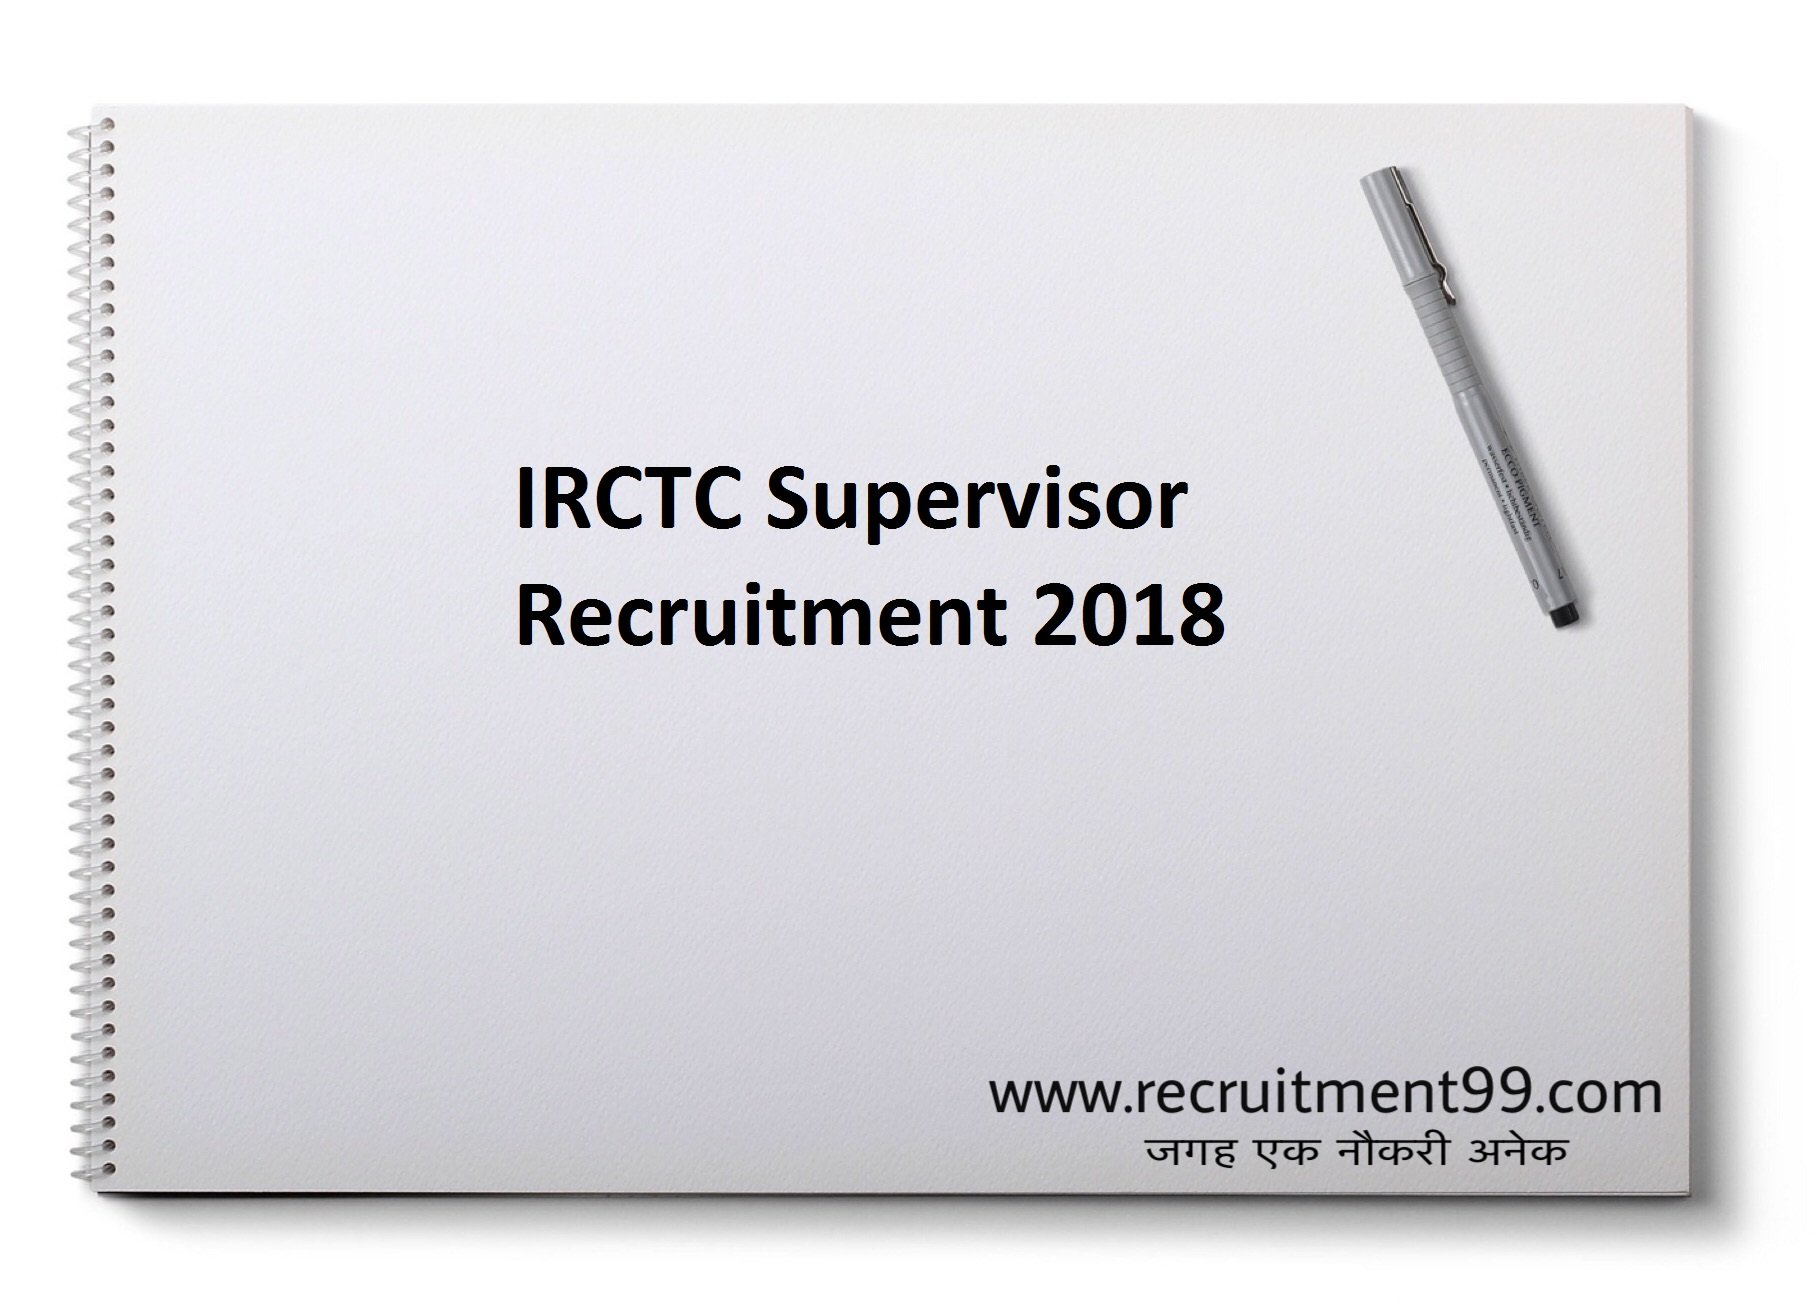 IRCTC Supervisor Recruitment 2018